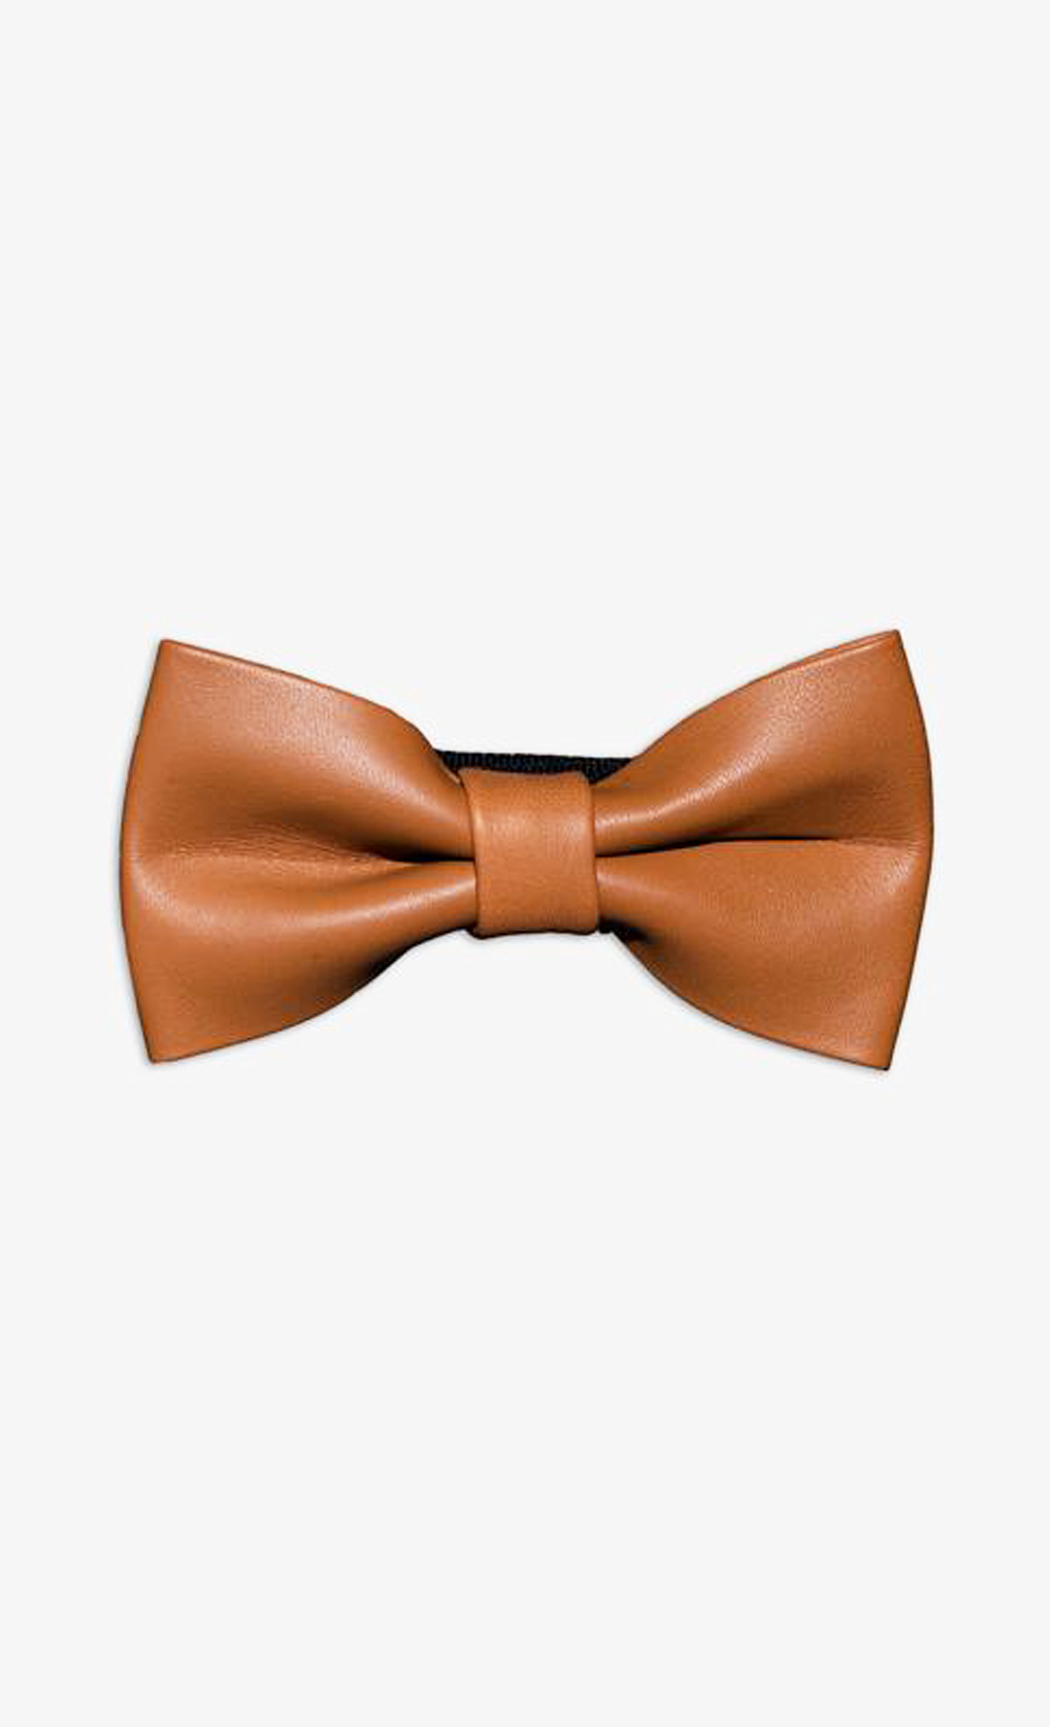 Light Brown Genuine Leather Bow Tie. Buy Online